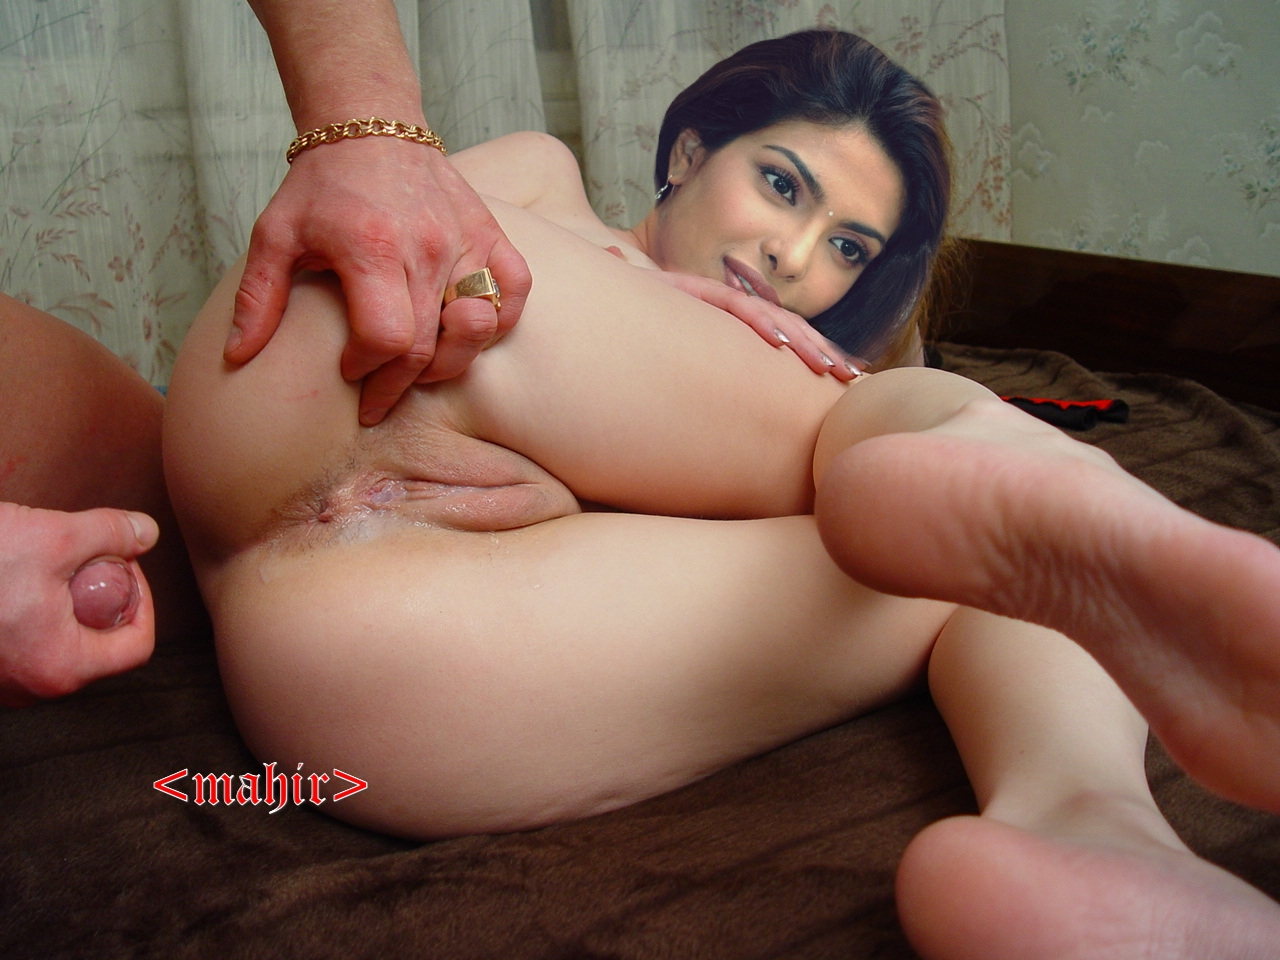 image Naked priyanka chopra giving blowjob